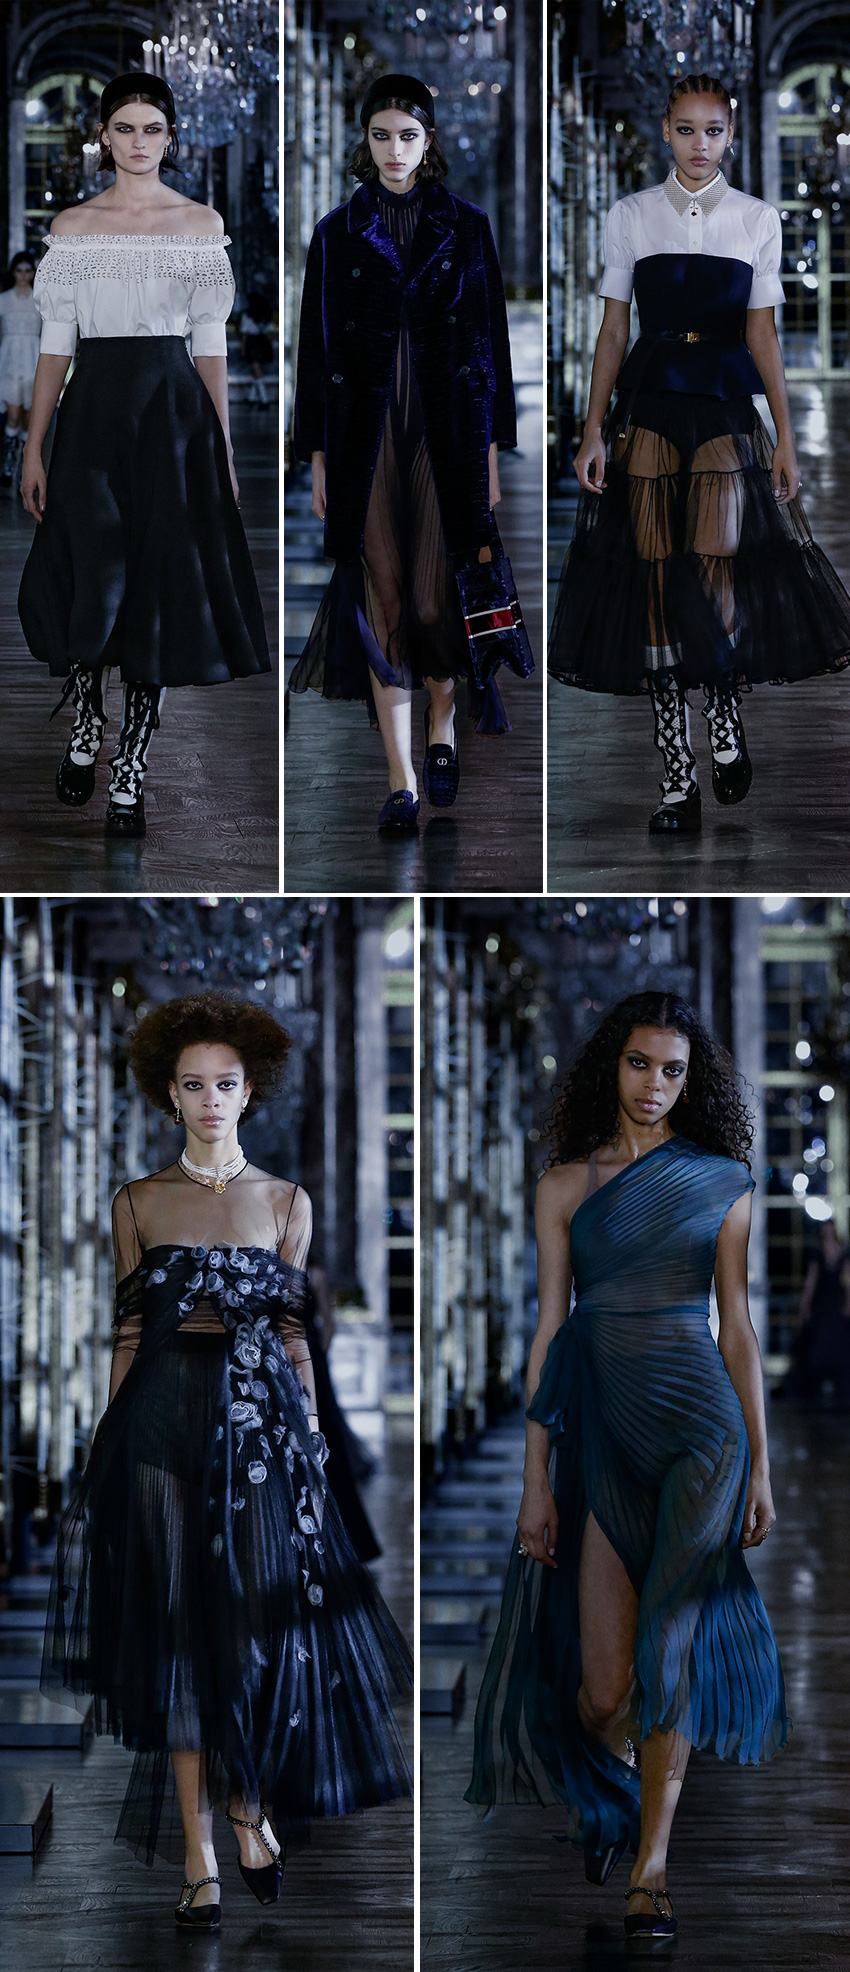 dior ready-to-Wear Fall Winter 2021 collection inspired in fairytales